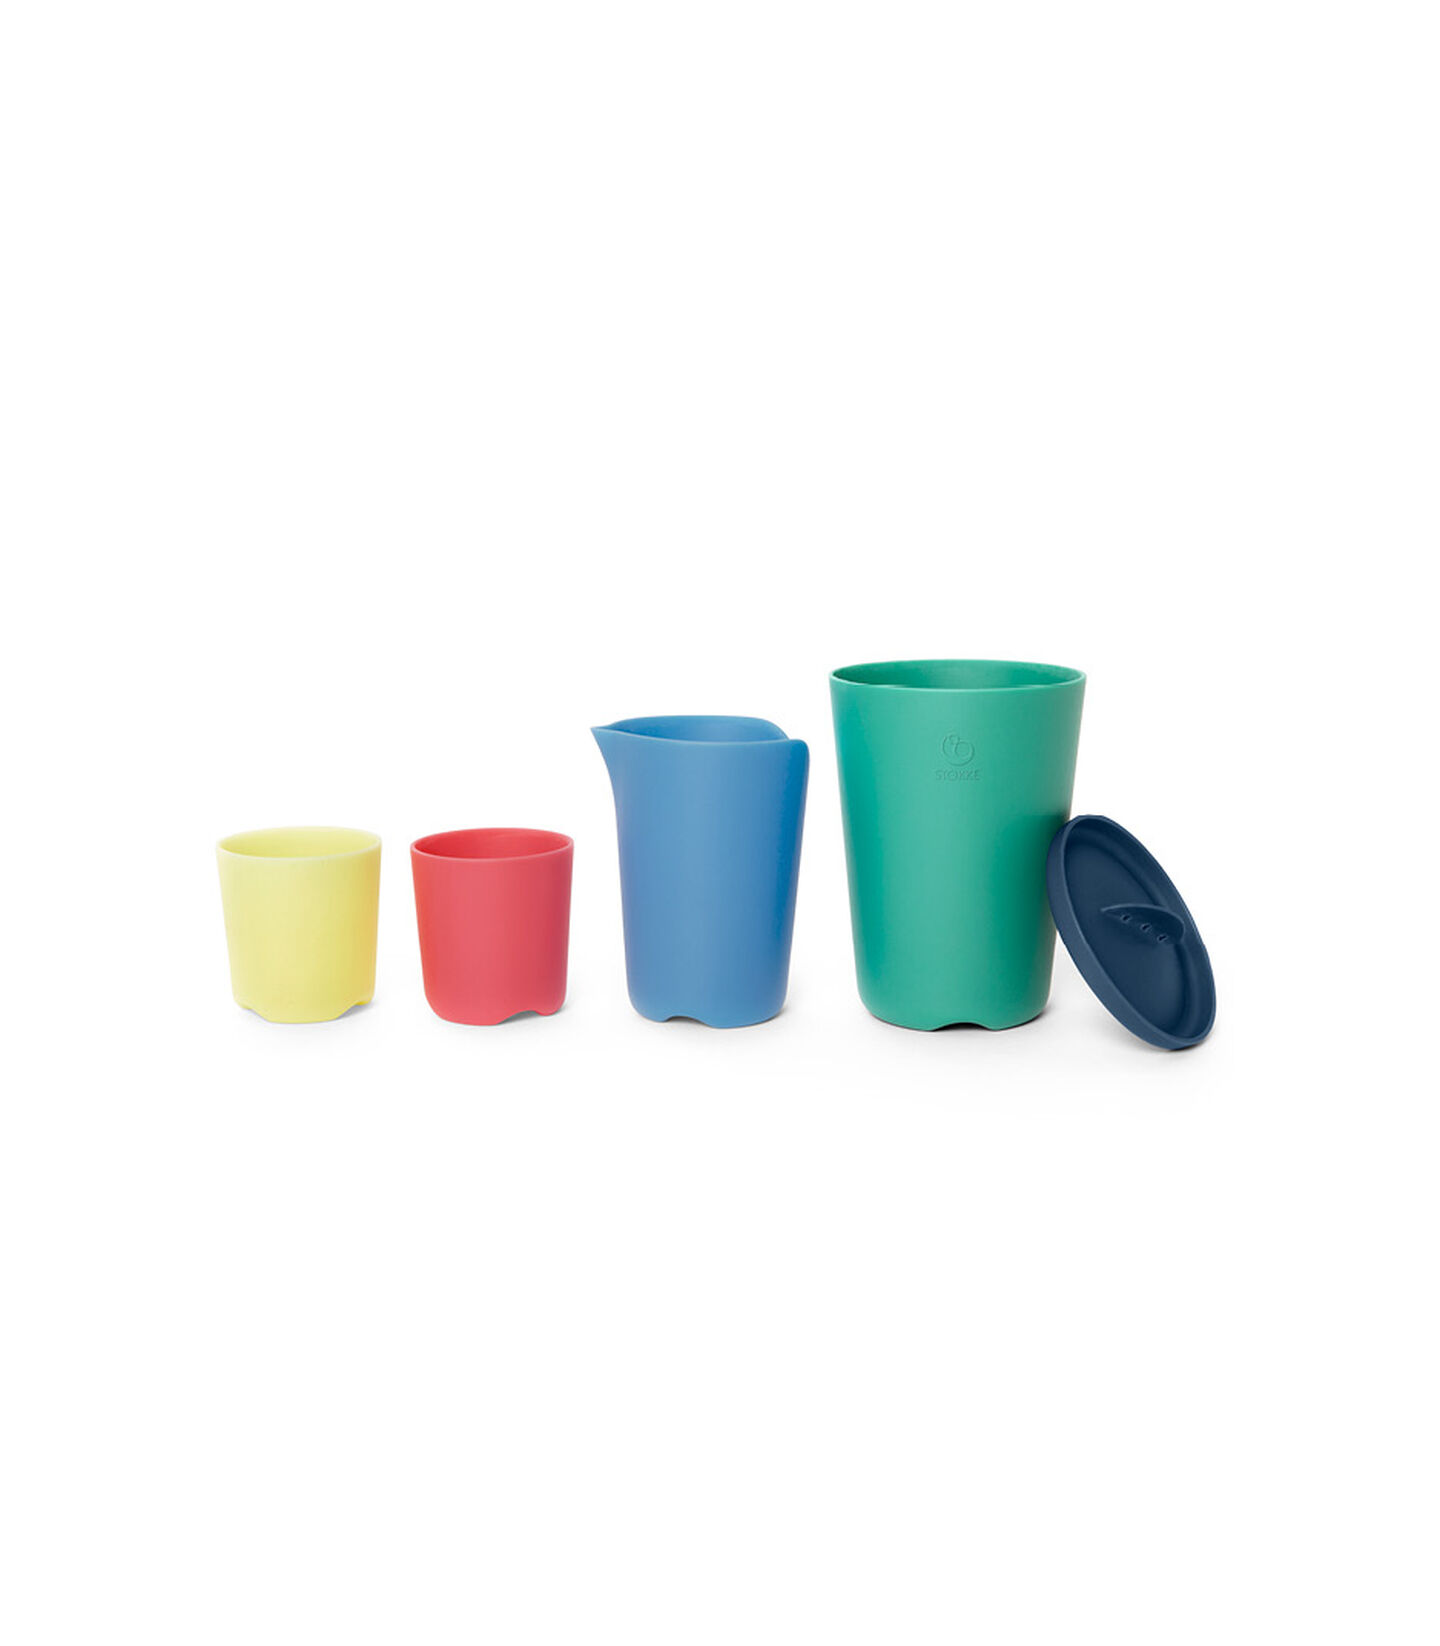 Stokke® Flexibath® Toy Cups Multi Colour, Multicolor, mainview view 2